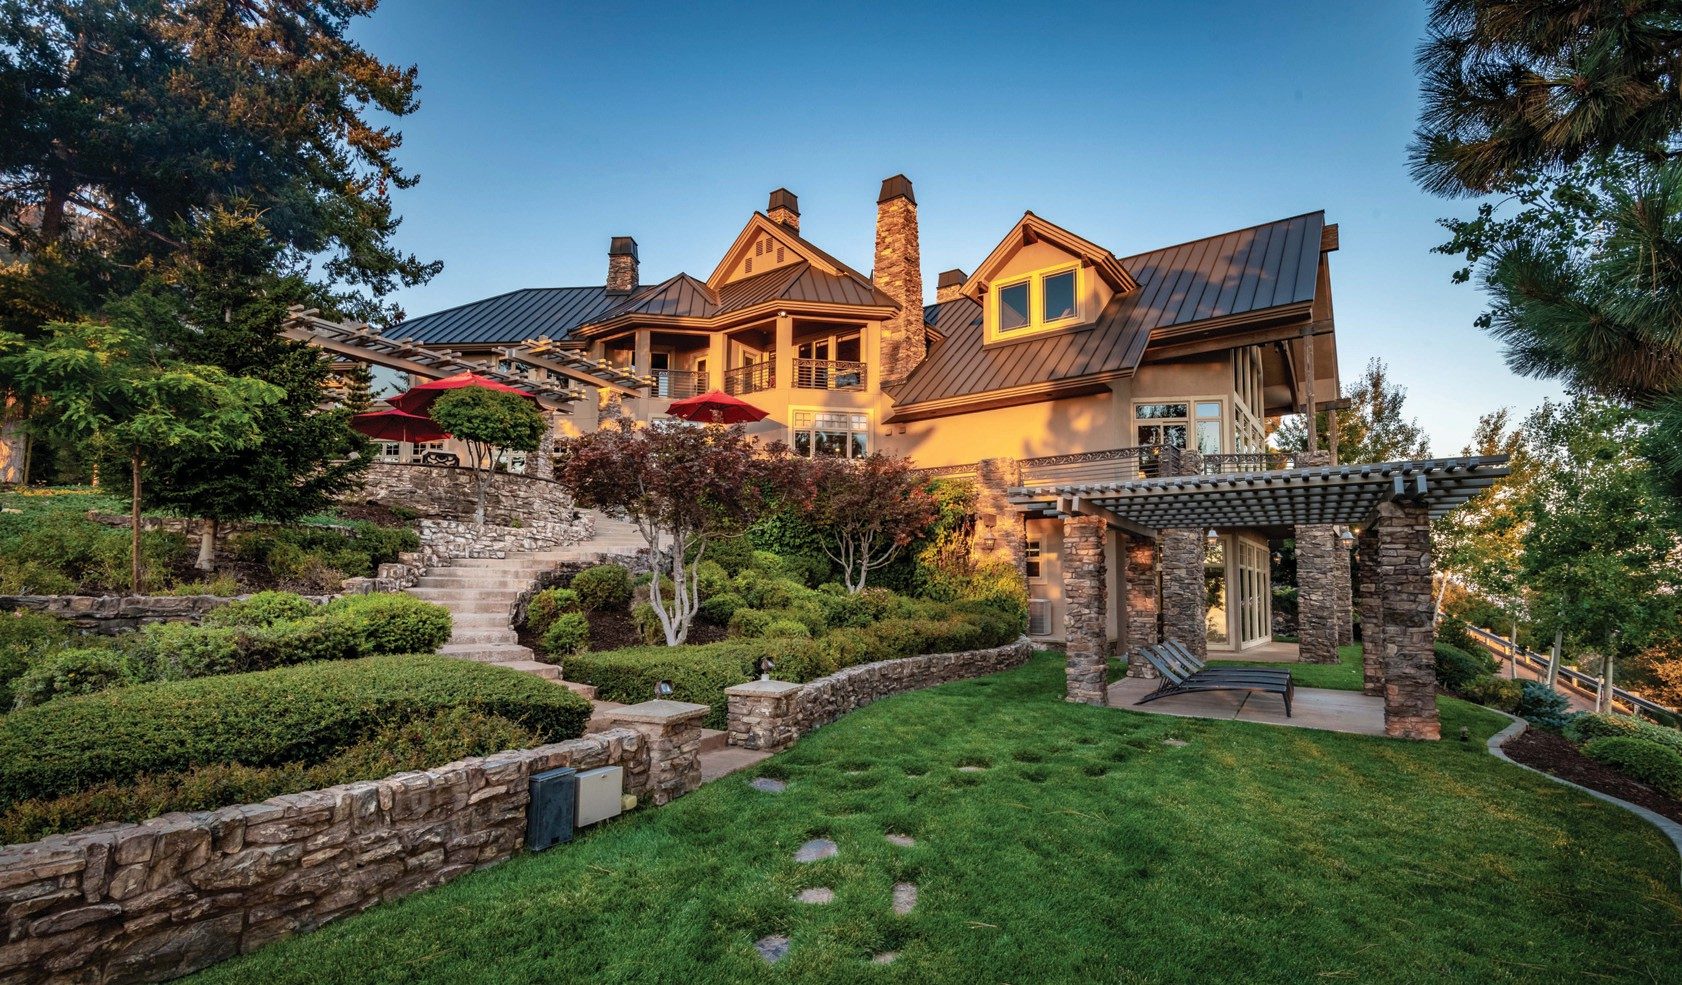 Lottery winner puts California mountaintop mansion on the